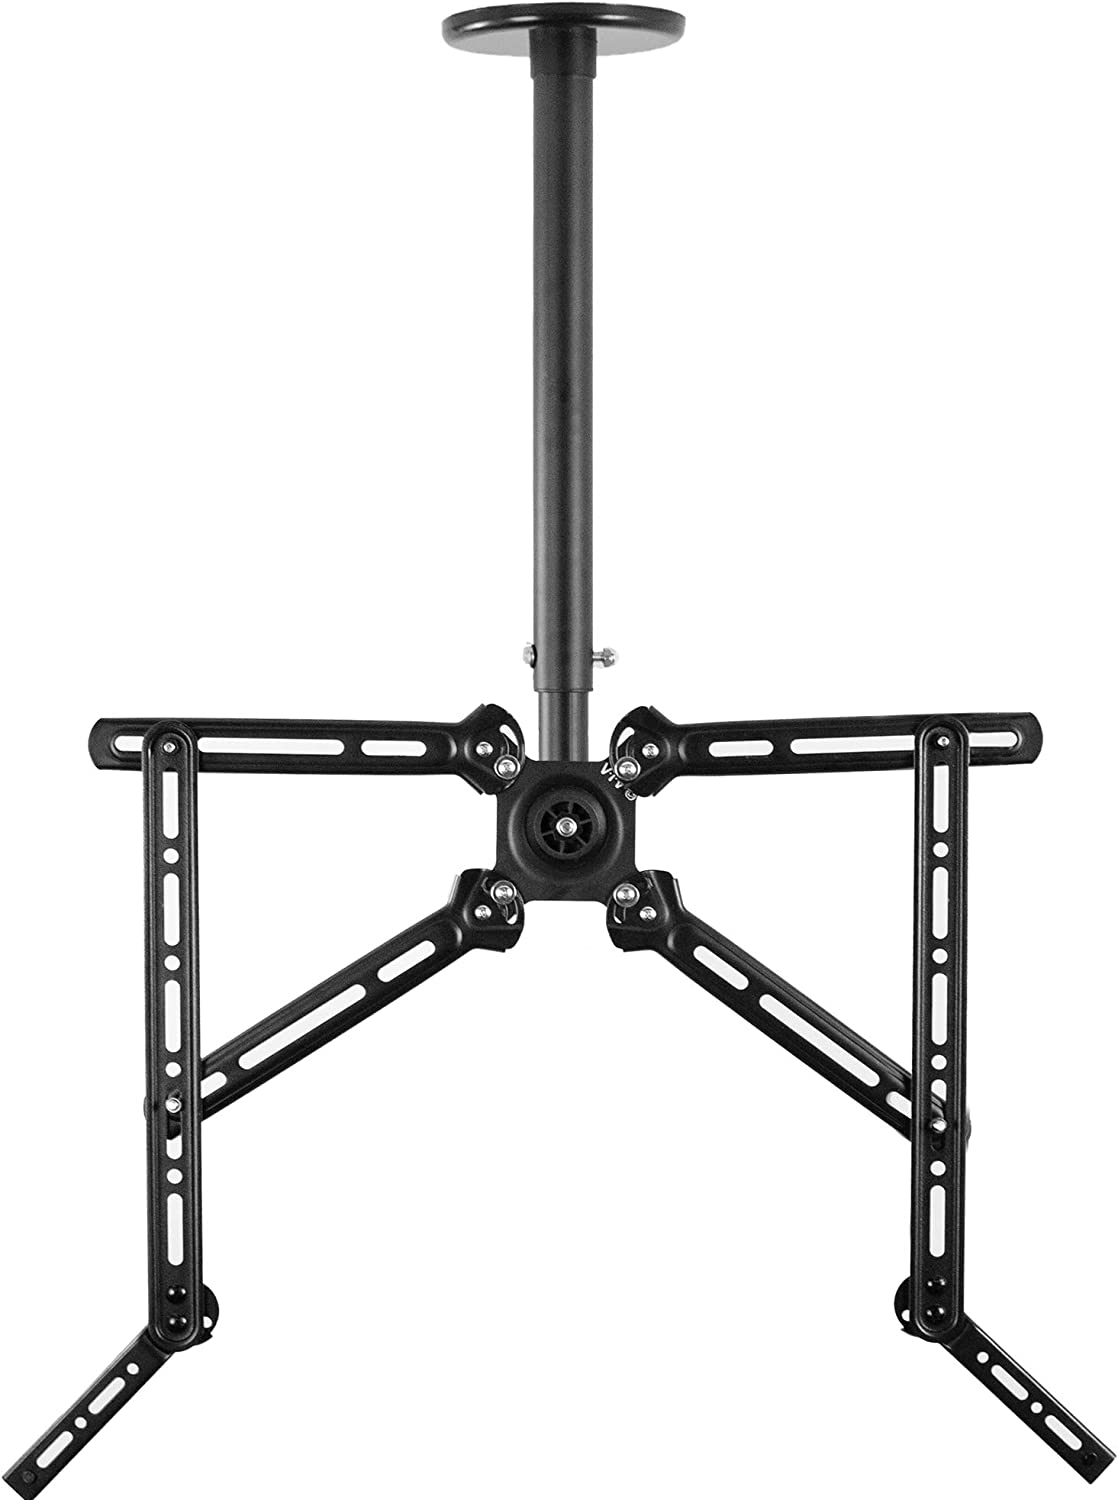 VIVO Manual Flat Ceiling Reservation Gifts TV Mount for with 55 to 23 inch Screens